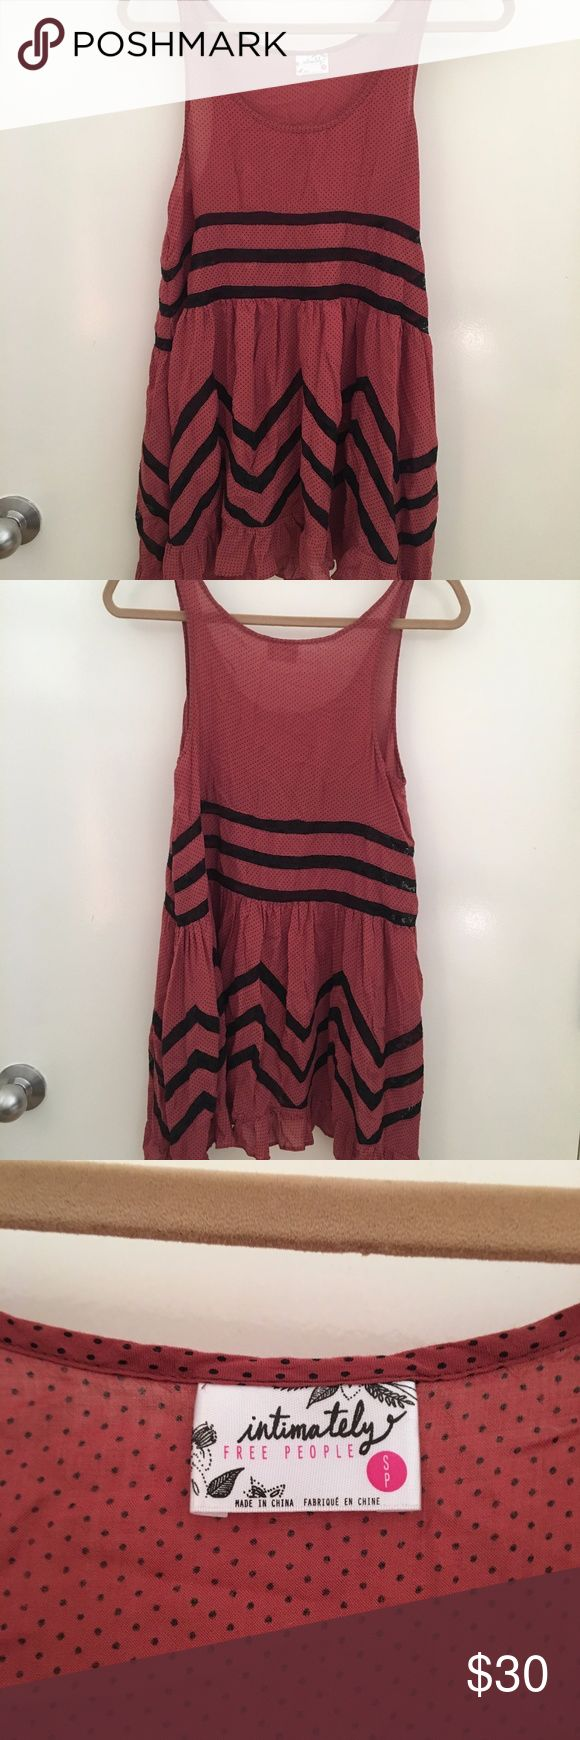 Free People Voile and Lace Trapeze Slip Free People Voile and Lace Trapeze Slip. Burnt coral with black. Rare color combo.  Size: Small, only worn a few times.  https://www.freepeople.com/shop/voile-and-lace-trapeze-slip/ Free People Dresses